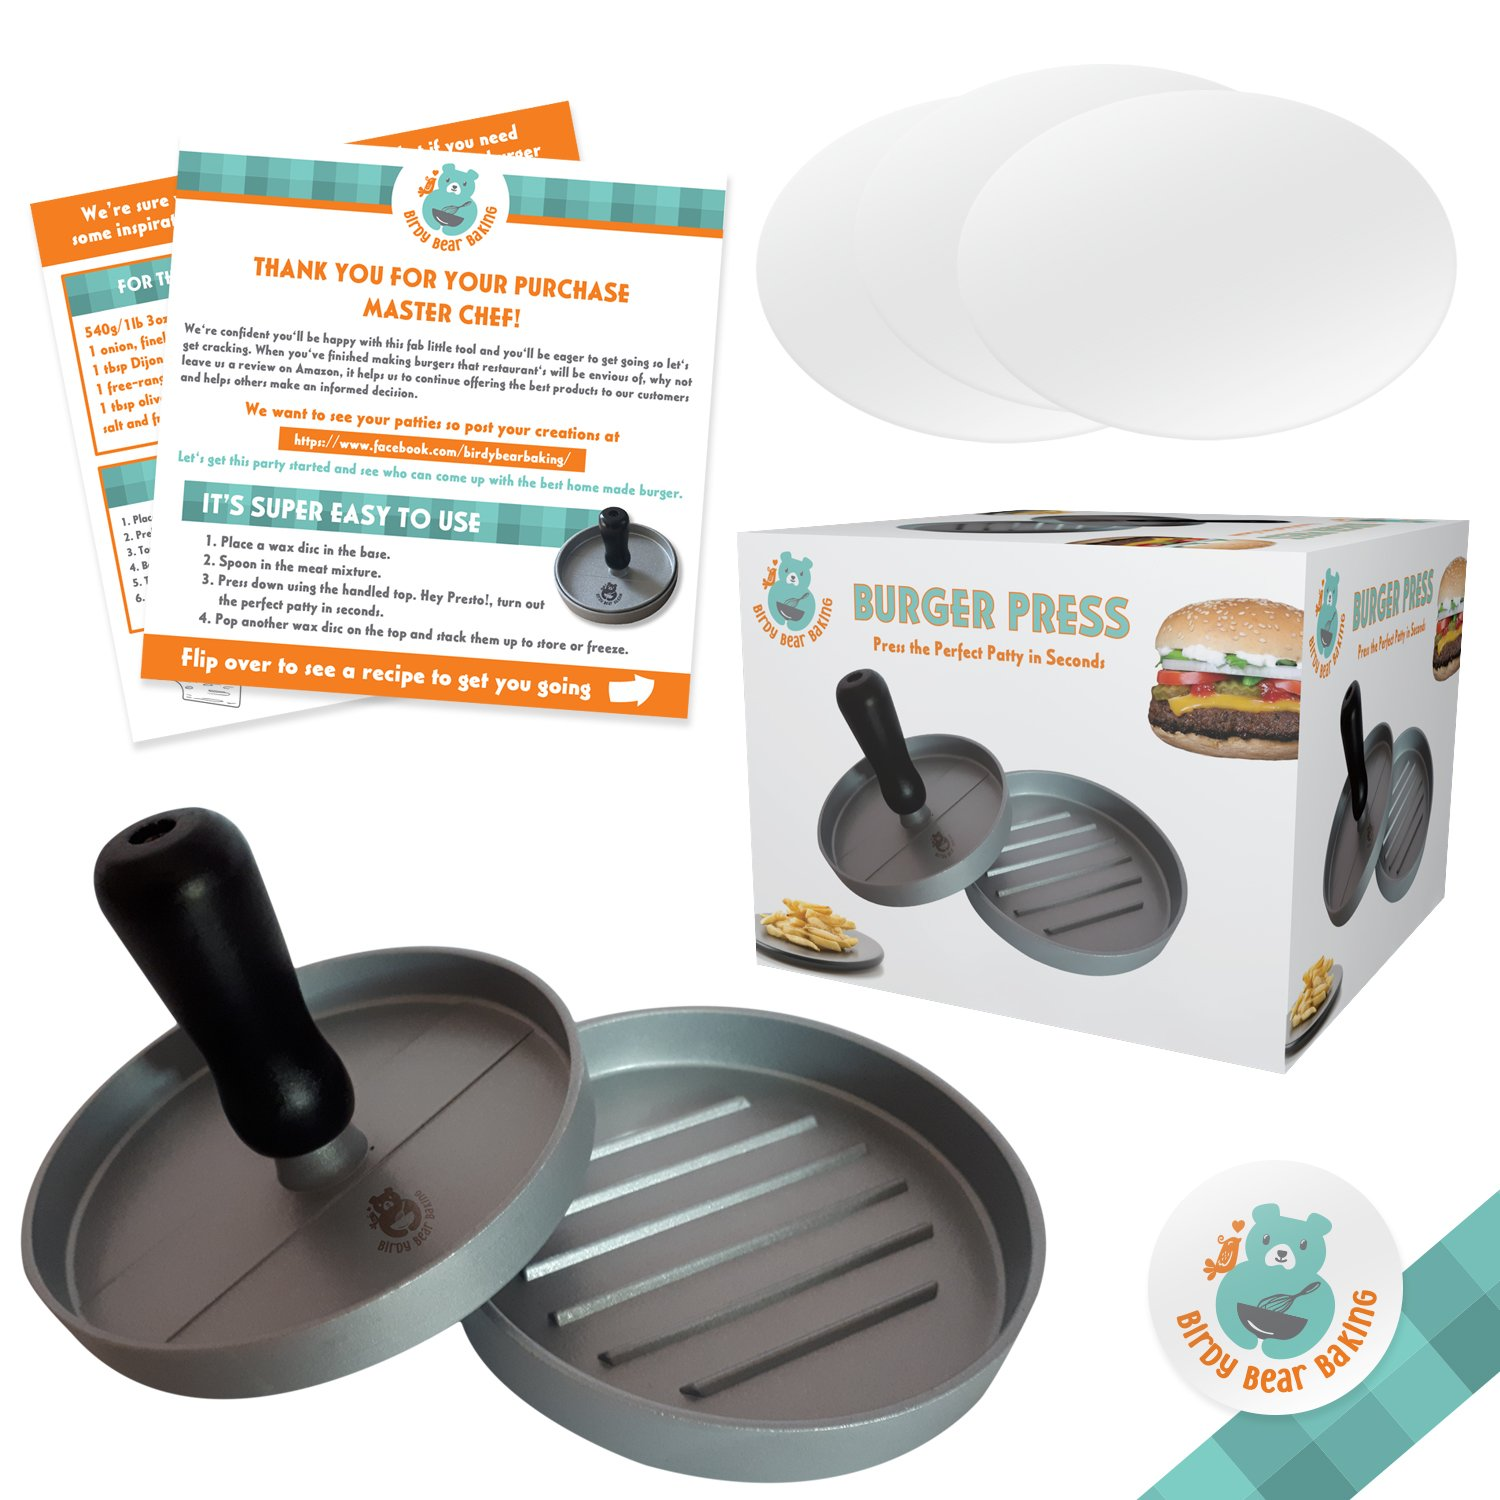 Burger Press for Making Perfect Hamburger Patties - Non-Stick Aluminium Mould To Easily Create the Best Burgers for Your Grill Oven or BBQ - Easy To Clean and Dishwasher Safe - Eat A Restaurant Style Meat Patty That You Made Yourself Includes 30 Wax Paper